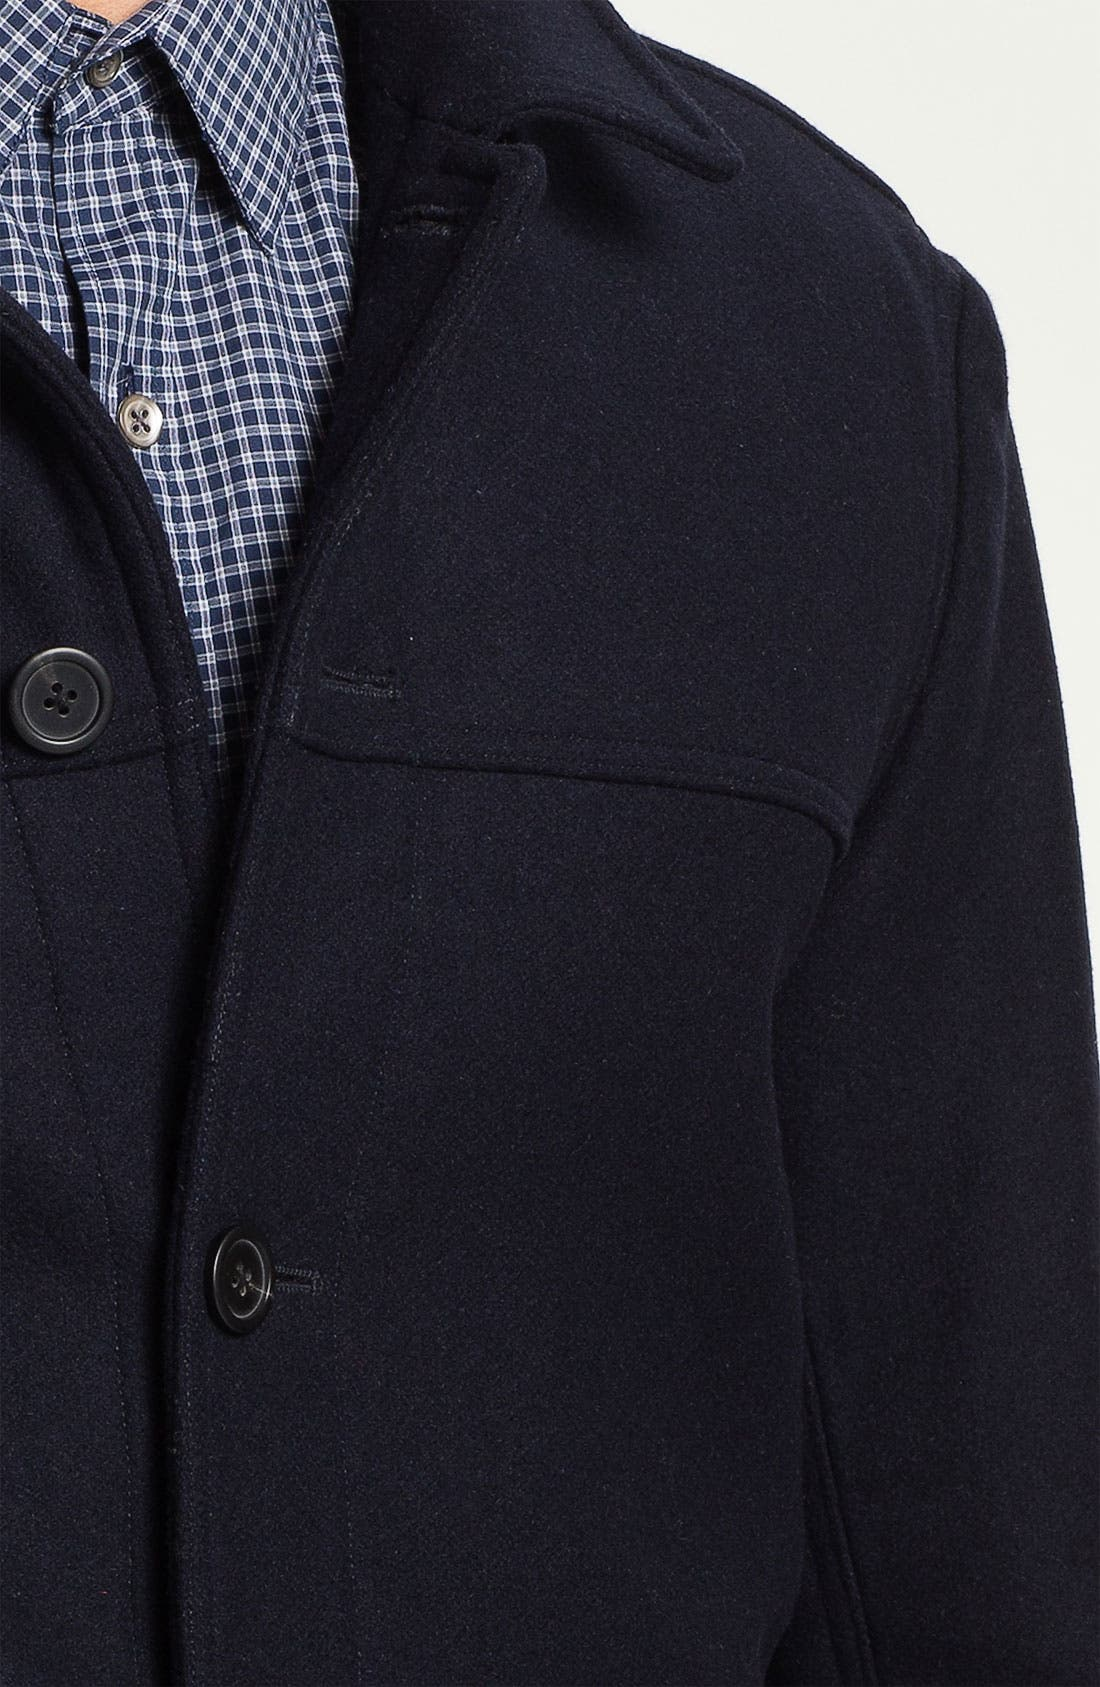 THEORY,                             Wool & Cashmere Blend Coat,                             Alternate thumbnail 3, color,                             025